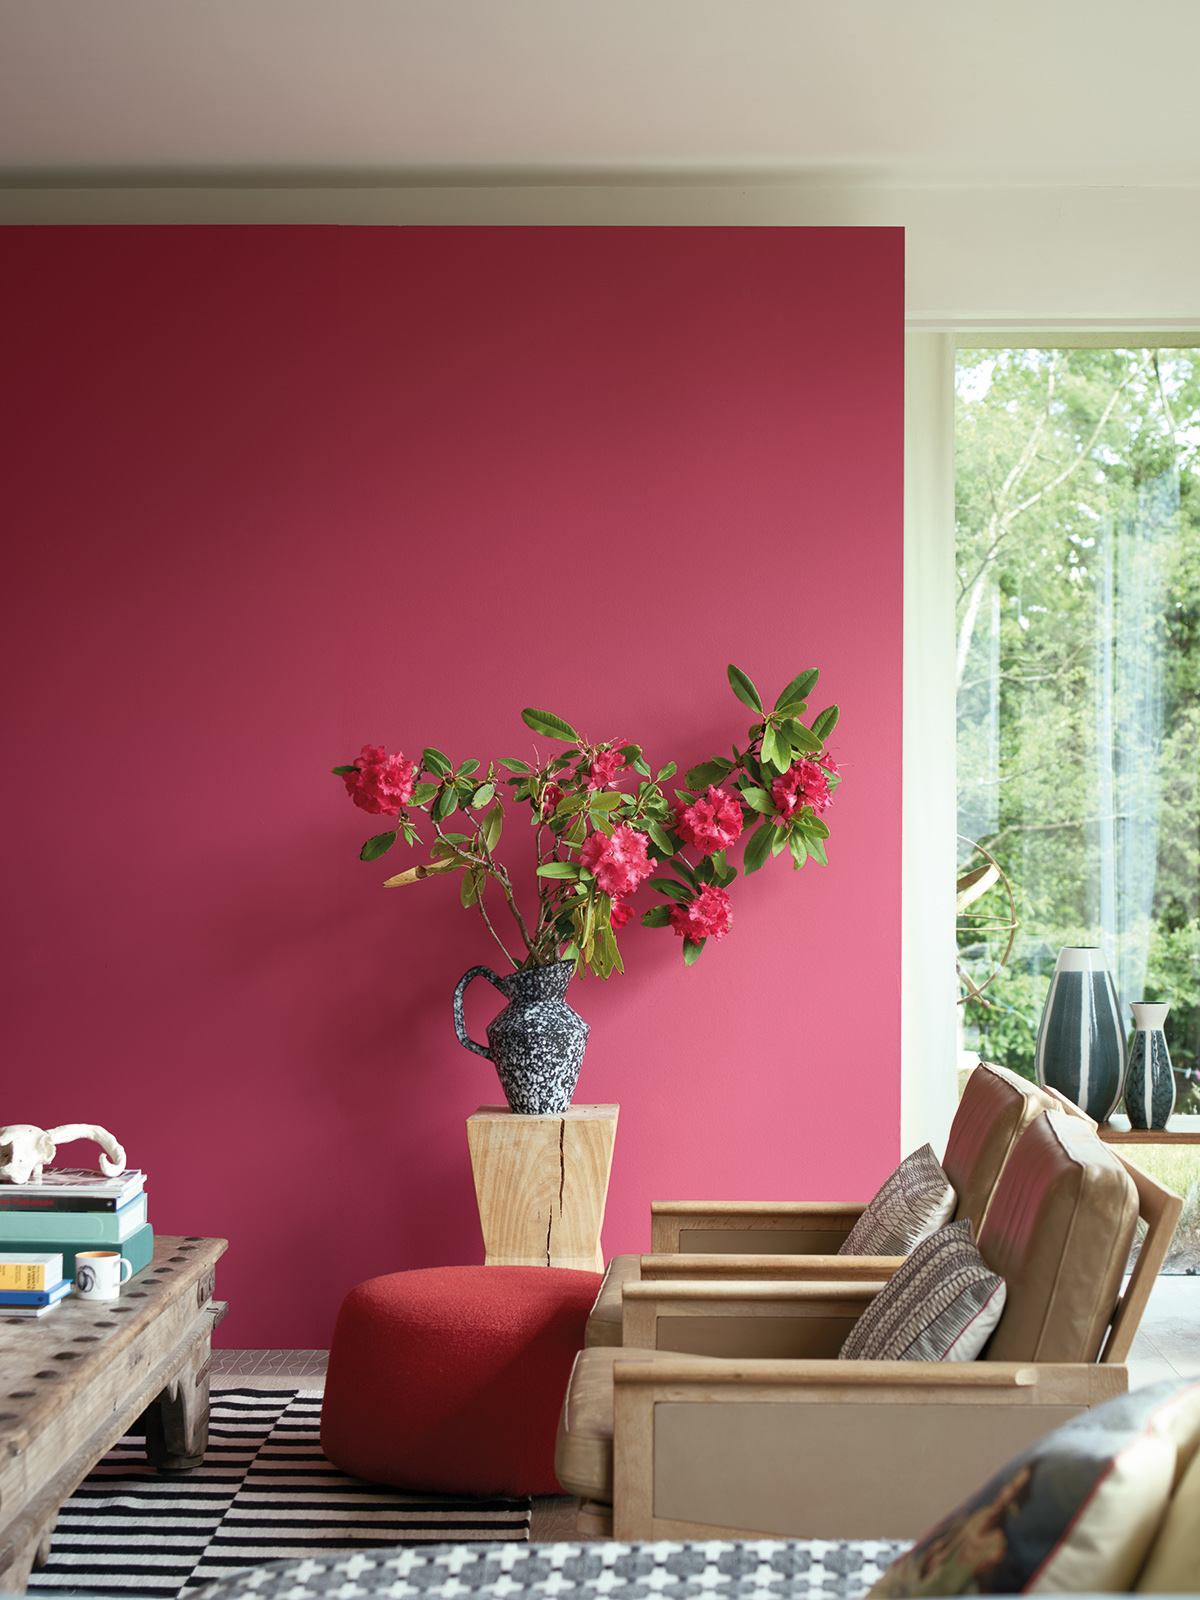 Farrow & Ball launch a new paint collection in conjunction with the Natural History Museum. The Lake Red colour is a classic tone and is brought up-to-date with modern wooden living room furniture and a focal floral display. Sophie Robinson looks at overall collection, find out more here #farrowandball #sophierobinson #livingroom